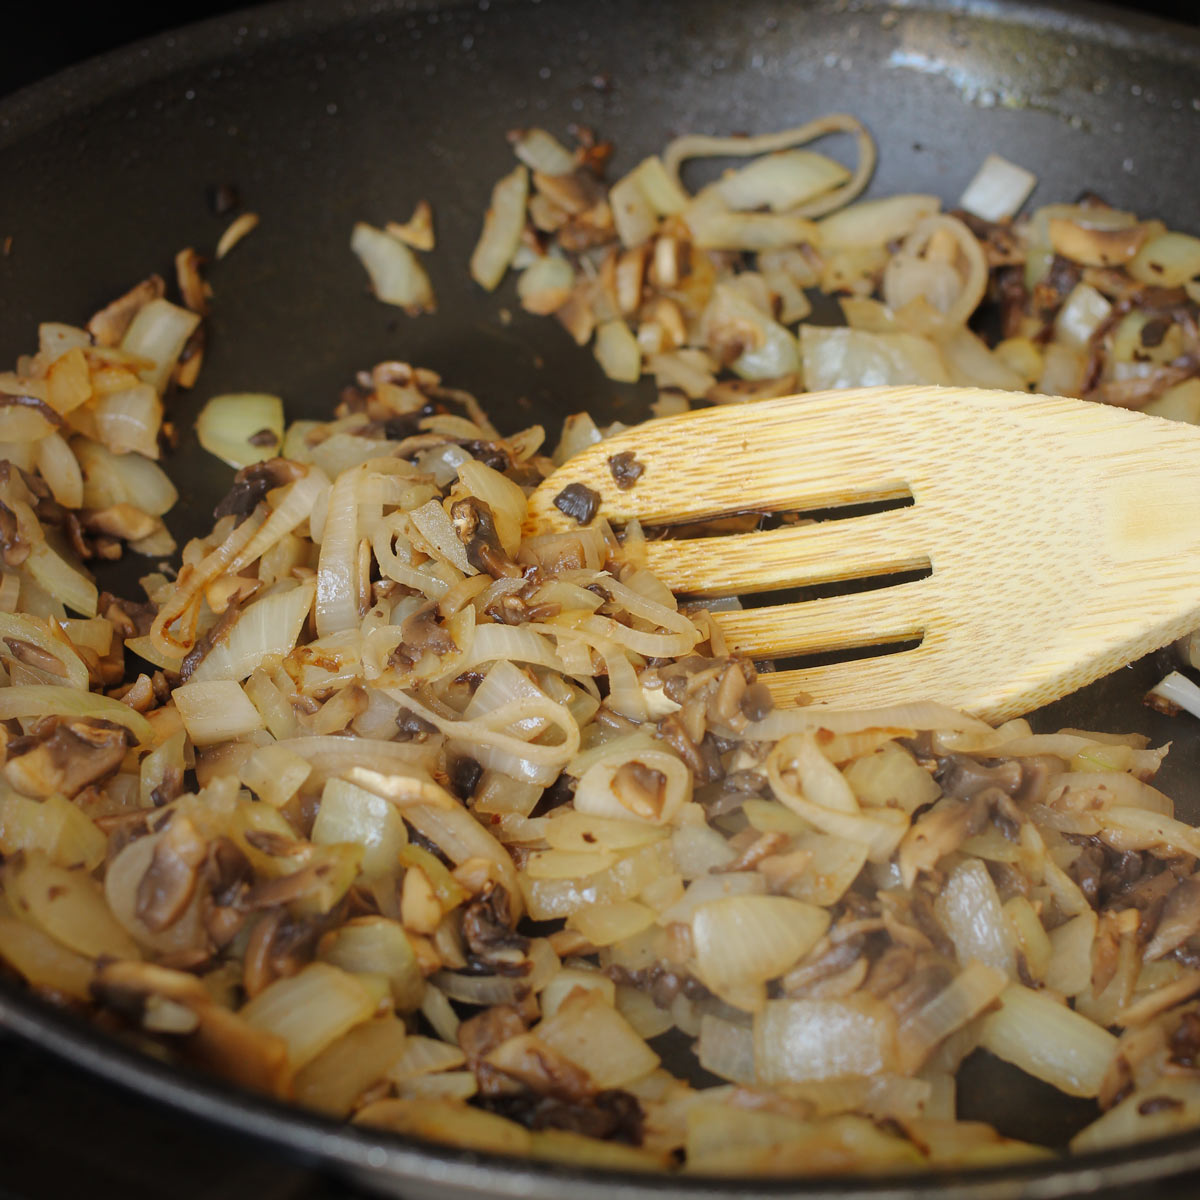 sauteed onions, shallots, and mushrooms in skillet.